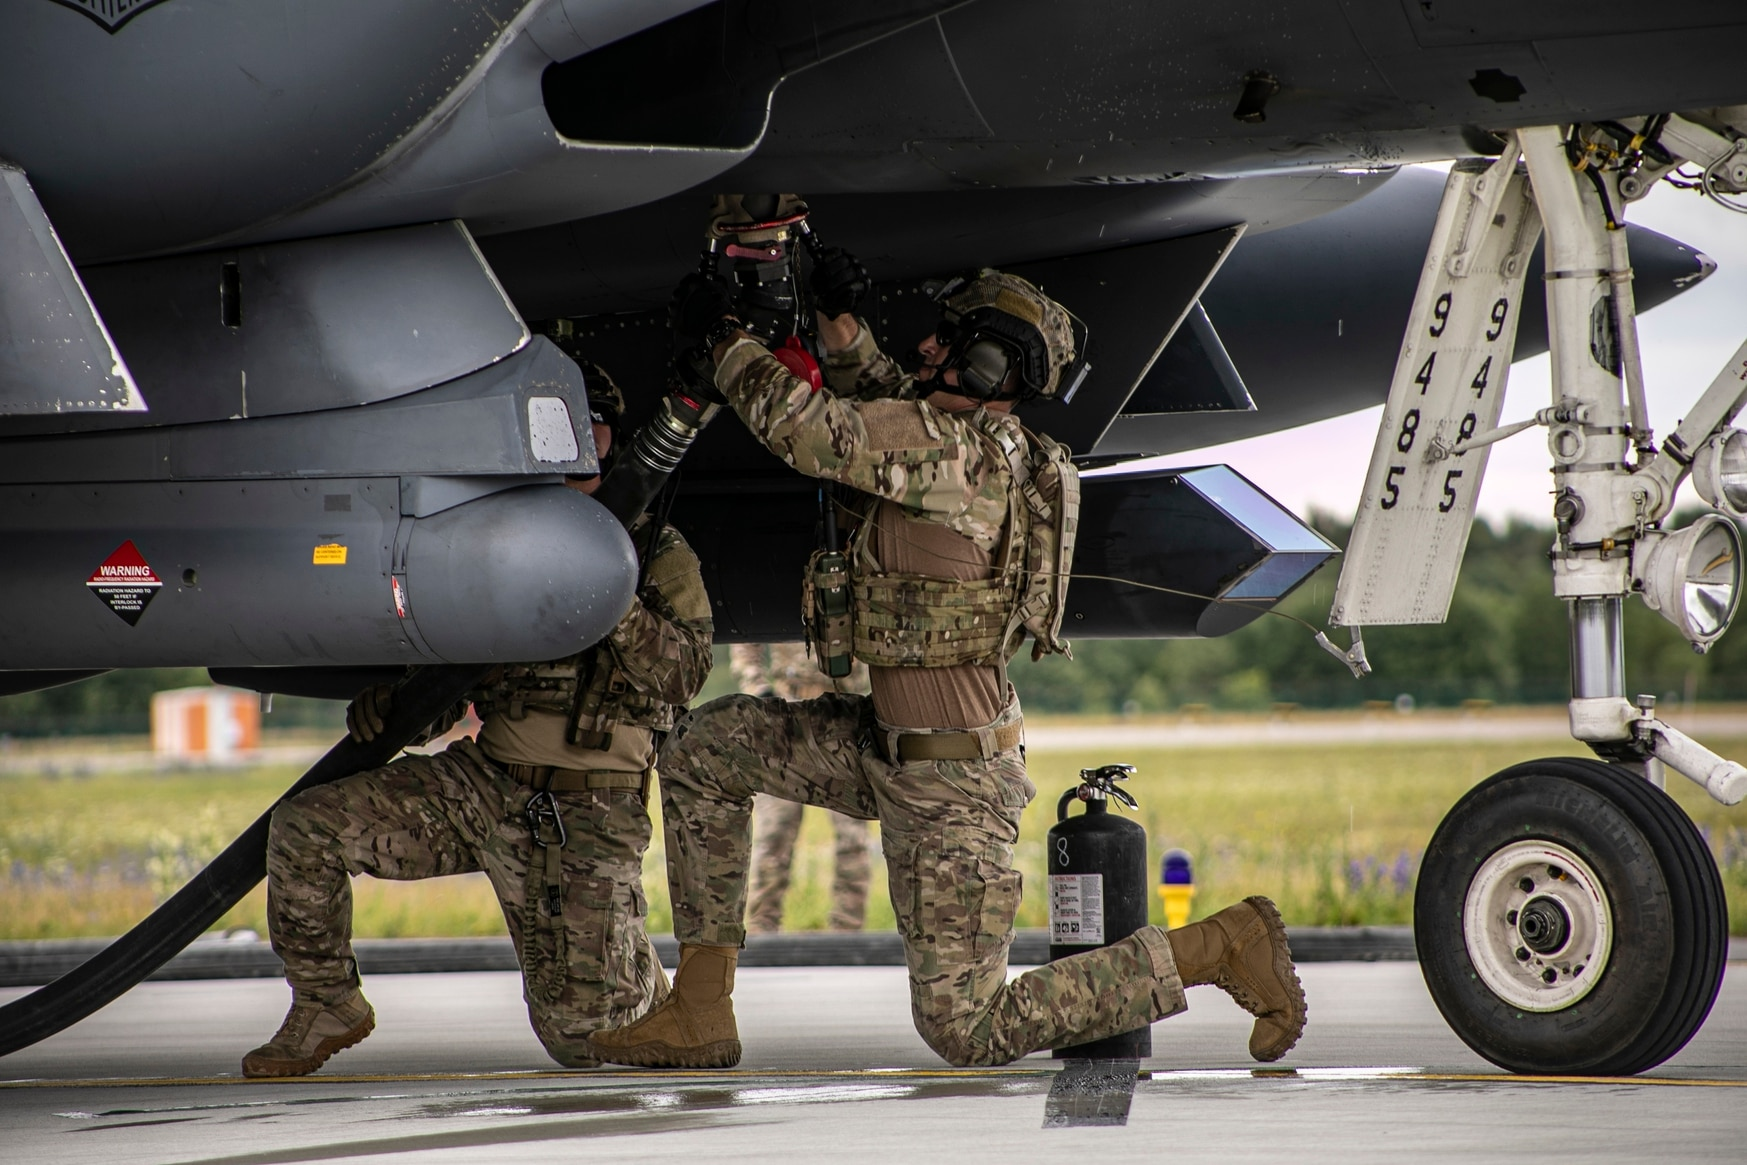 Two U.S. Air Force logistics readiness airmen attach a fuel nozzle underneath an F-15E Strike Eagle during a forward air refueling mission July 16 at Amari Air Base, Estonia. The mission was part of Operation Rapid Forge. (Sgt. Alexis Washburn-Jasinski/U.S. Army)